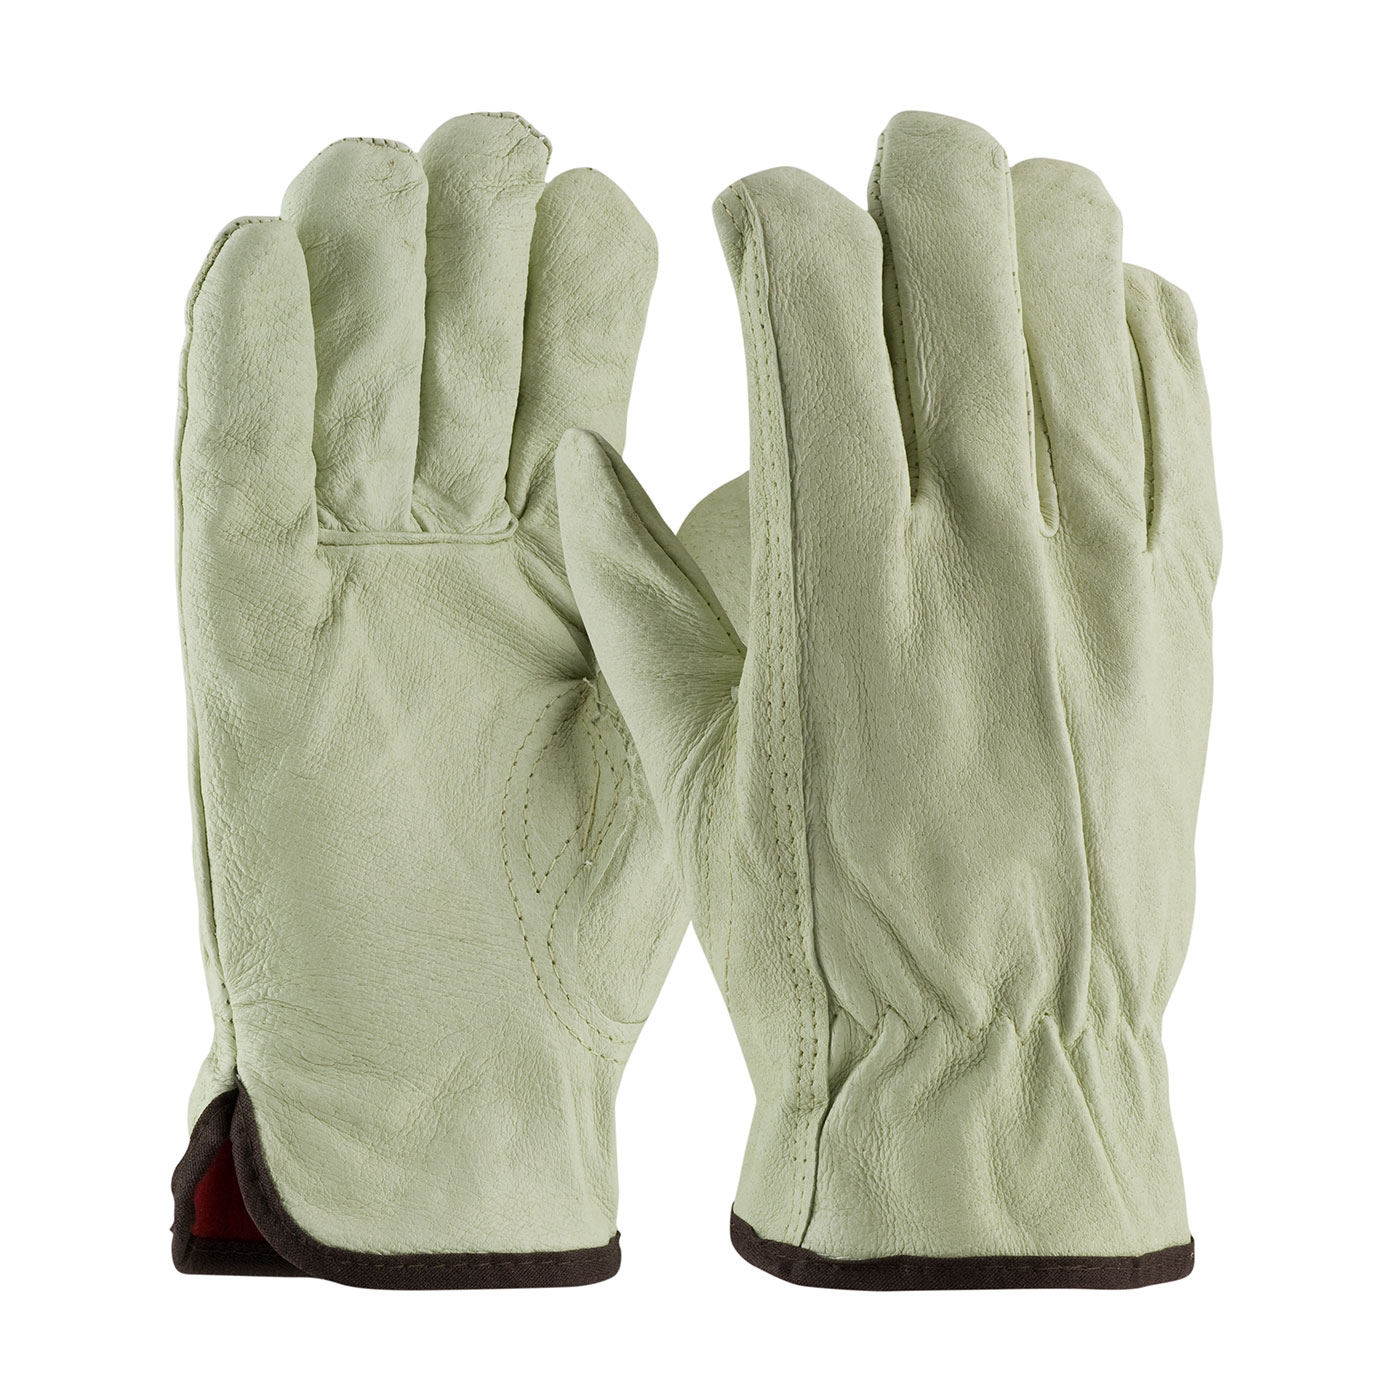 PIP® Premium Grade Top Grain Pigskin Leather Glove with Red Thermal Lining - Keystone Thumb. #77-468